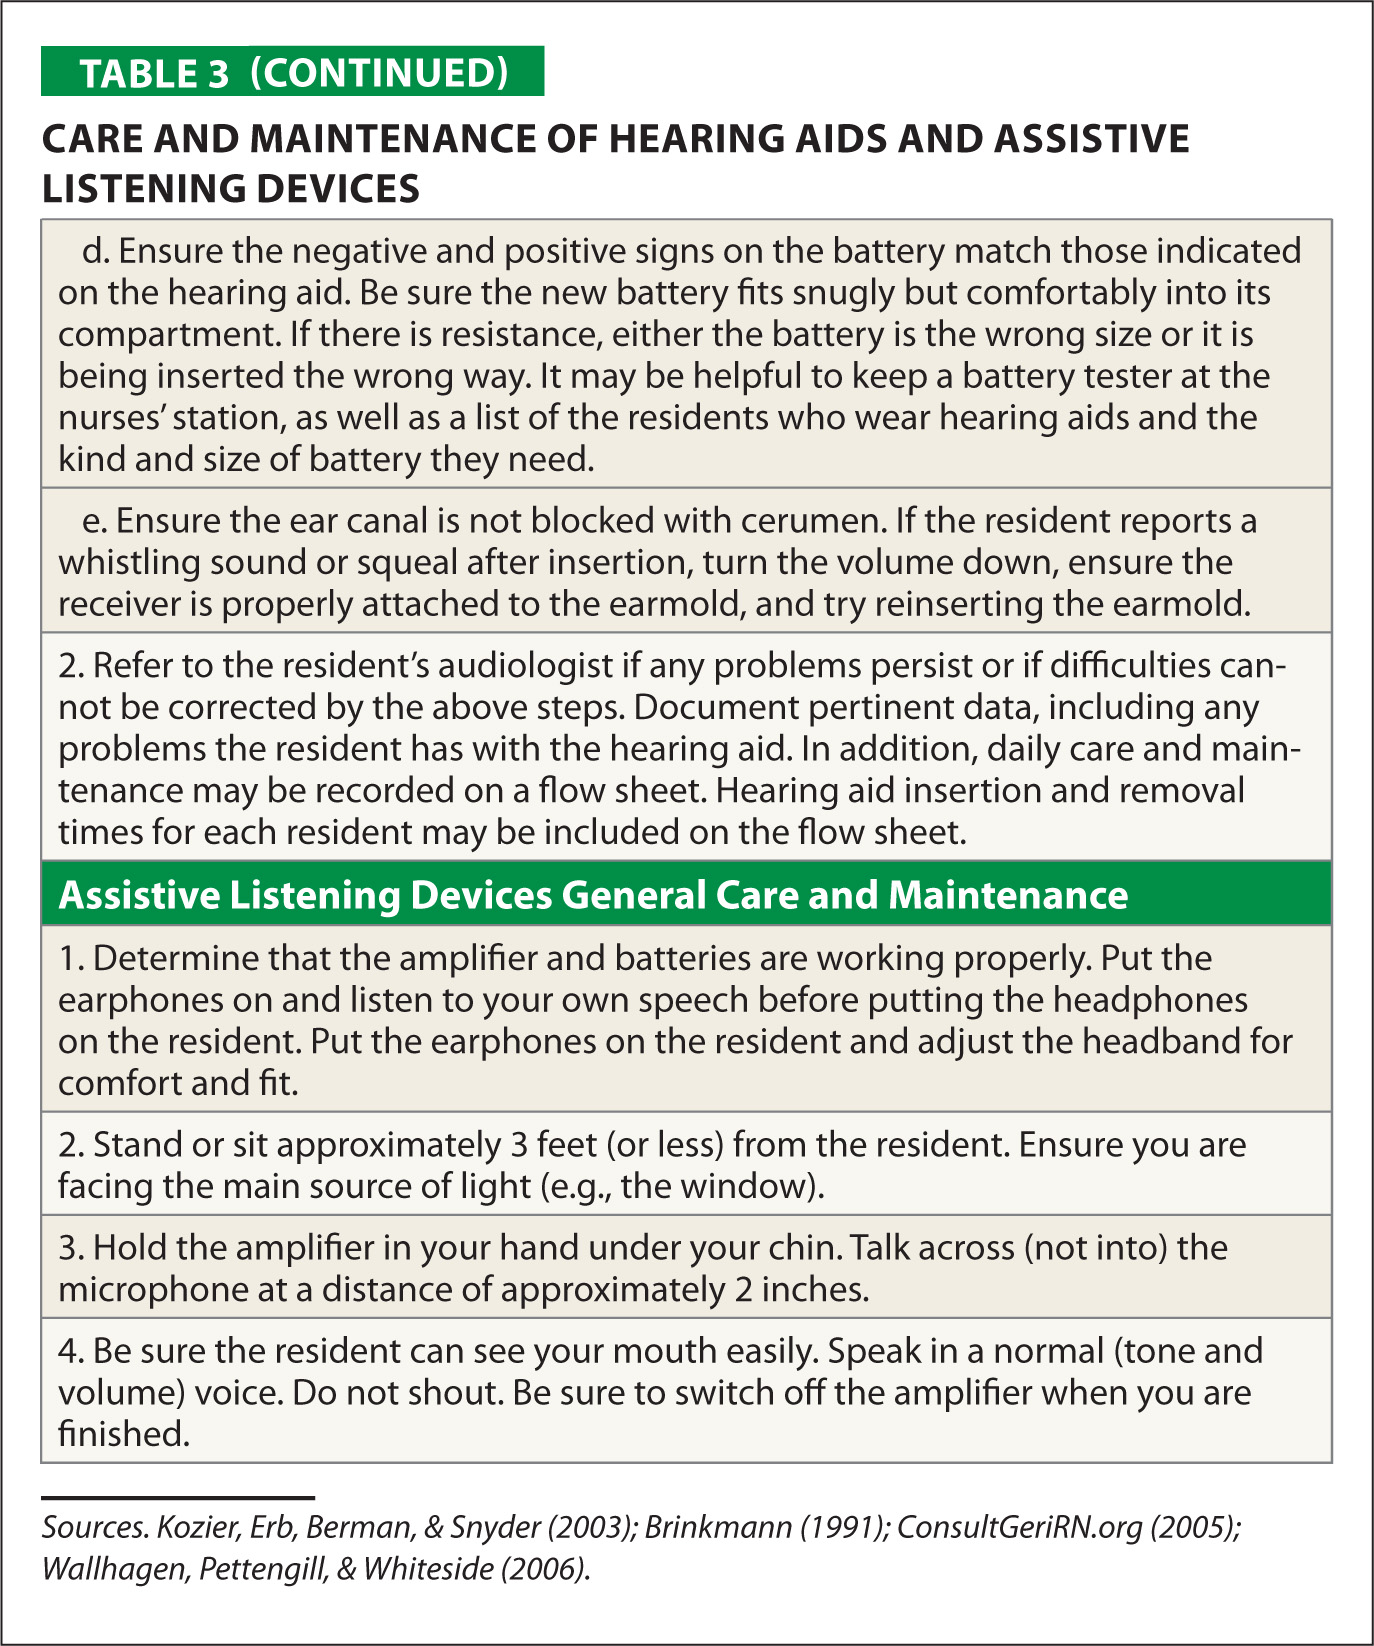 Care and Maintenance of Hearing Aids and Assistive Listening Devices